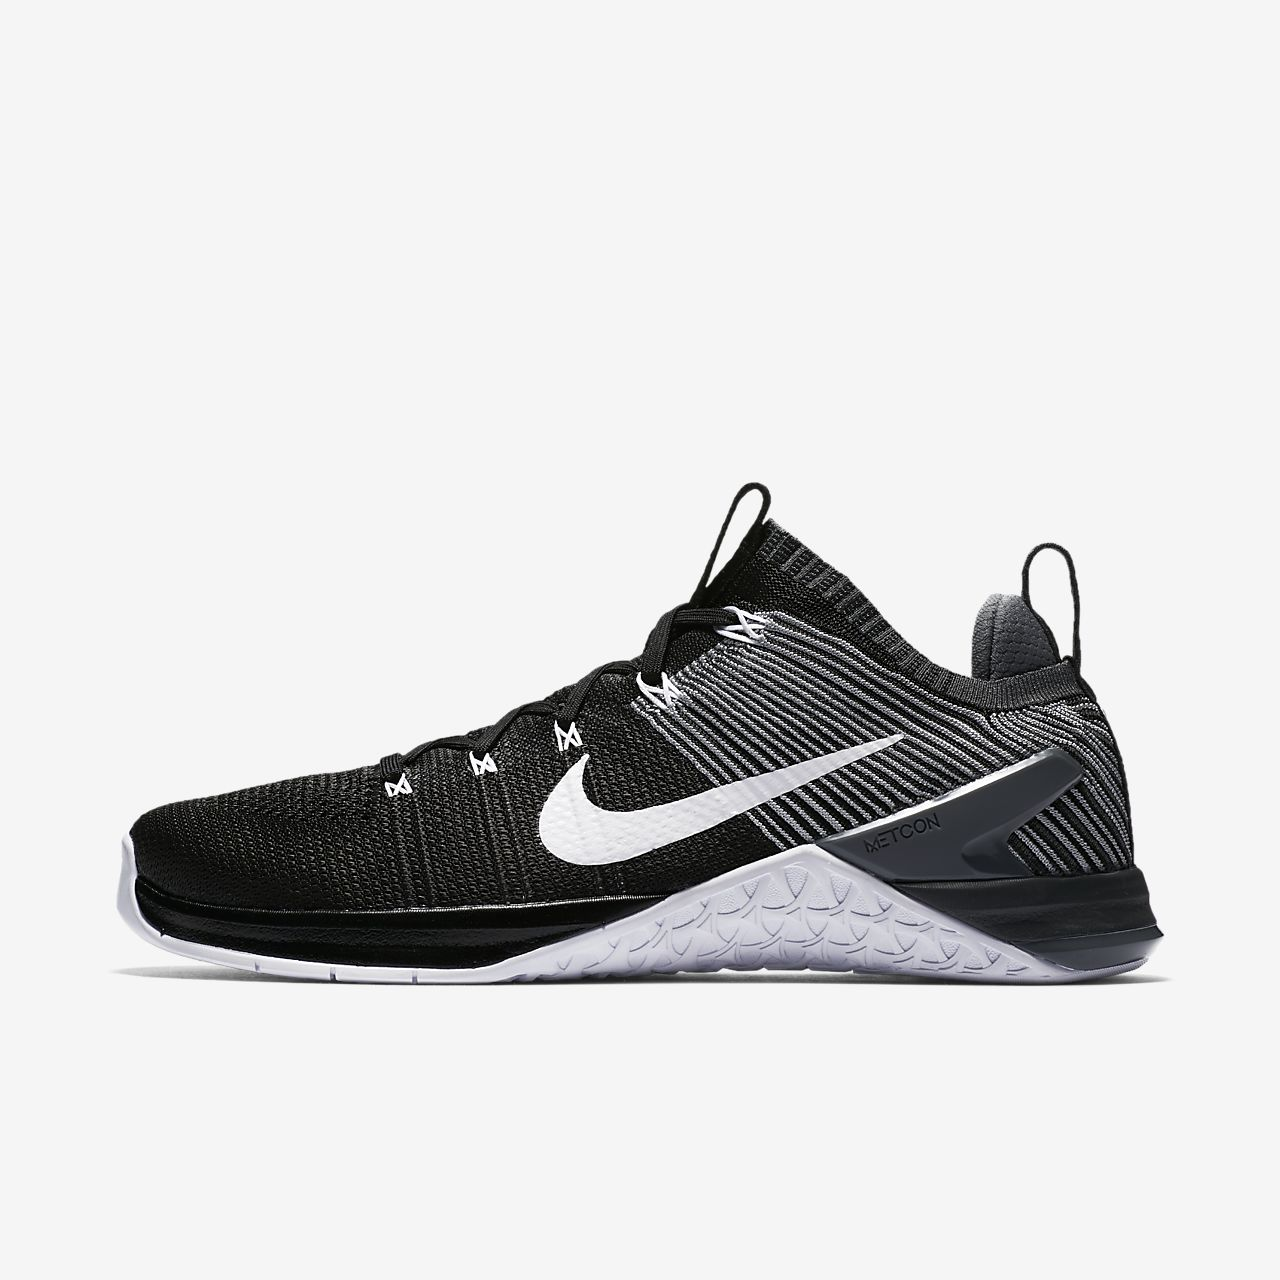 Nike Weightlifting Shoes  9b3f61be6